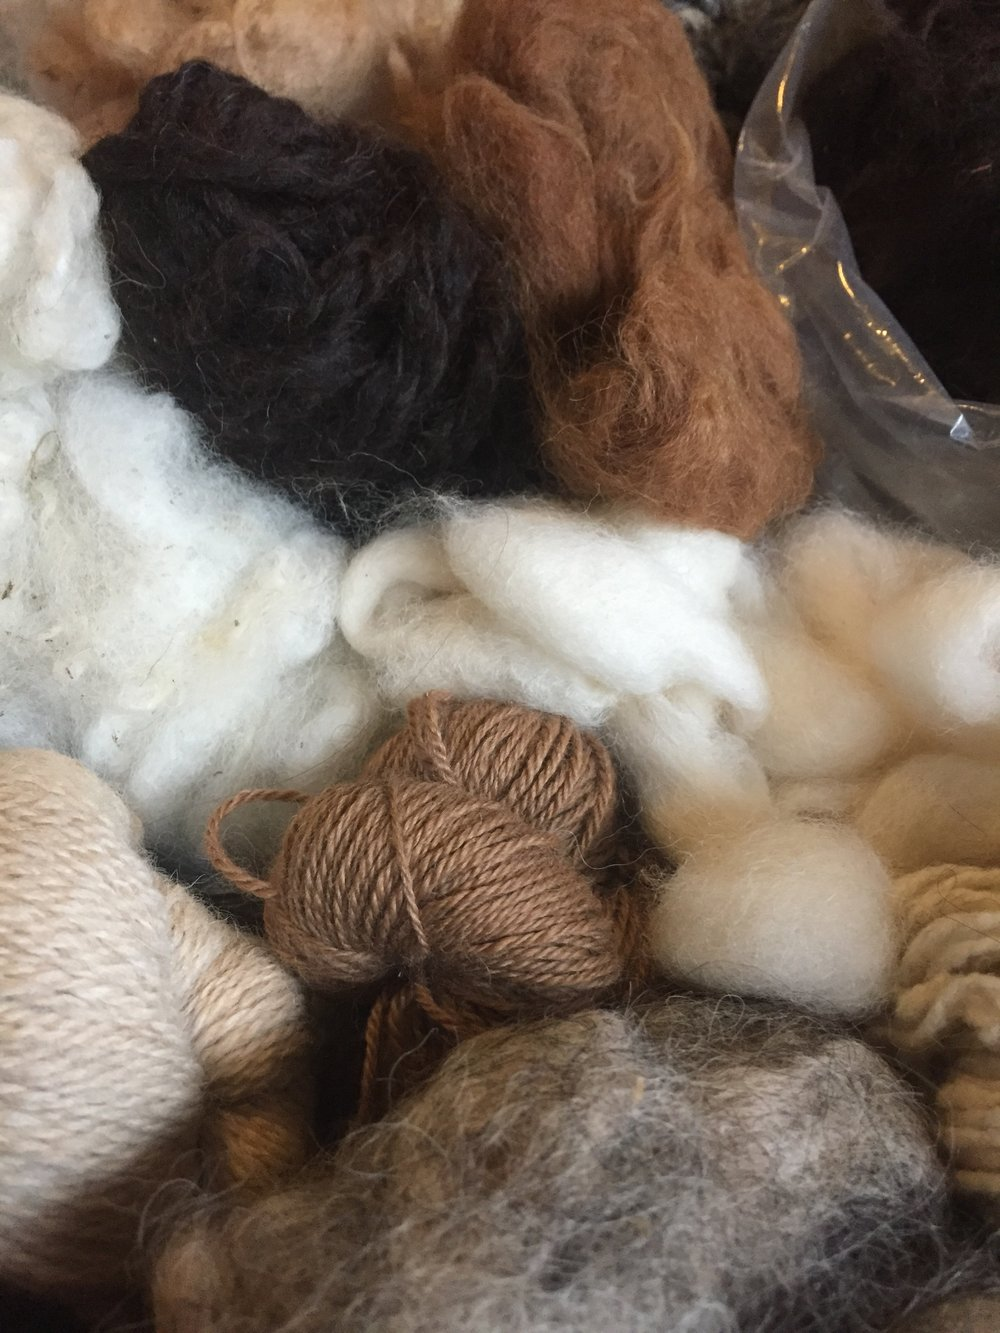 We source our fibers as locally as possible. We spend time on farms getting to know fiber producers and their animals, and then we take the fiber we source and turn it into beautiful (we think!) clothing and yarns for home use. We want to be able to answer when asked where our clothes come from. How about you?